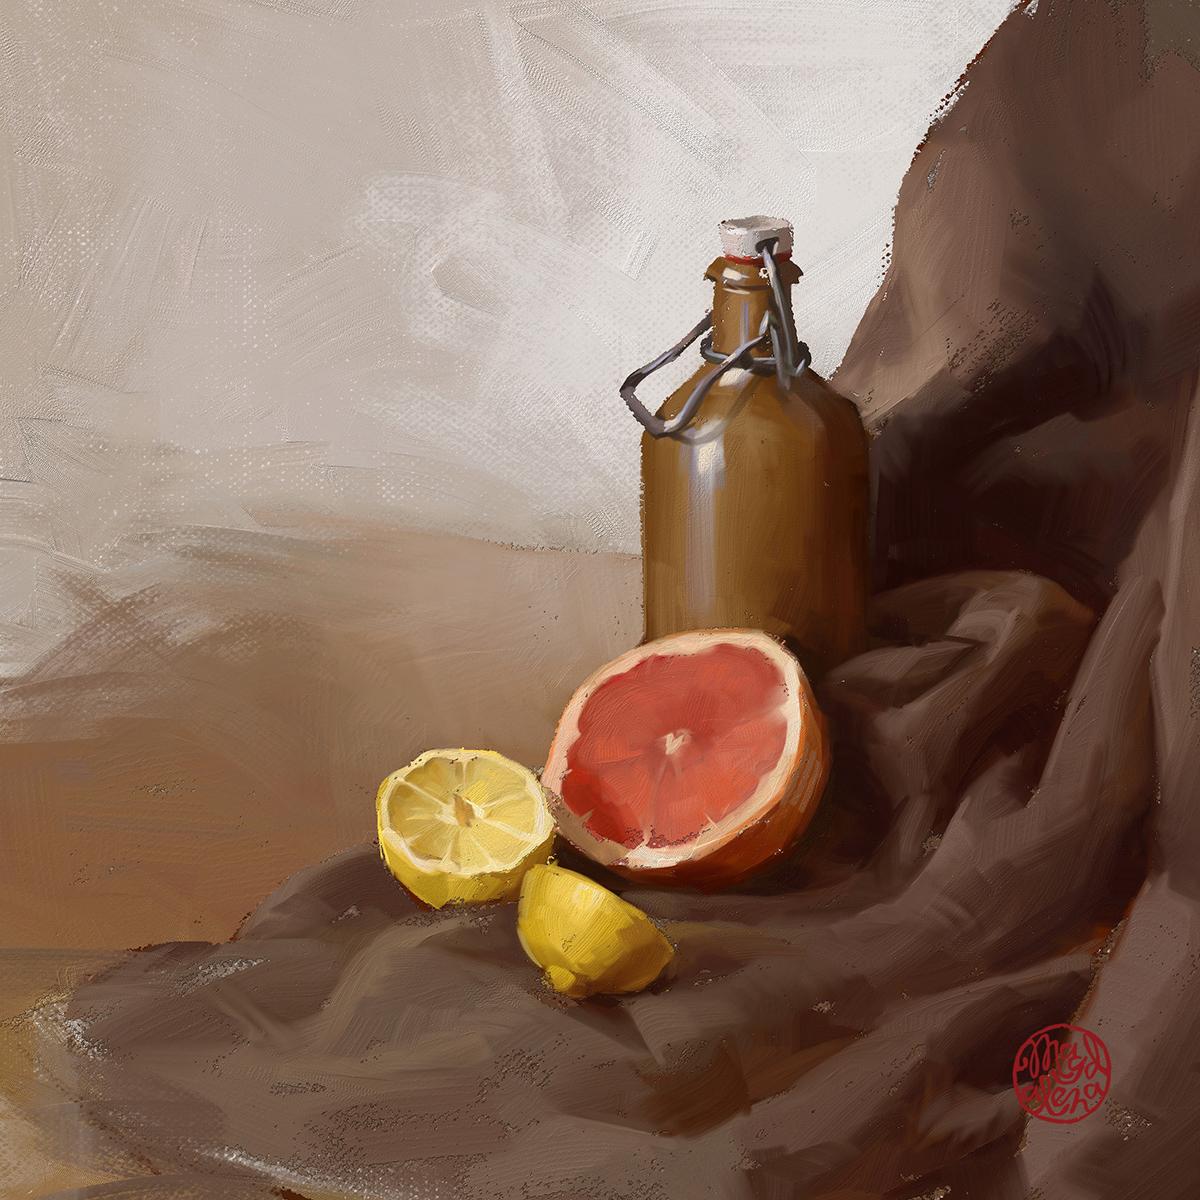 More still life painted in new Corel Painter 2021! Enjoying Thick paint brushes a lot! #digitalpainting #art #artsy #painting #digitalart #corelpainter  #hypnotizing_arts #artwork #artist2d #2dartist #wacom #oils #oilpainting #stilllife #brown #thickpaintpic.twitter.com/69mAxy8dws